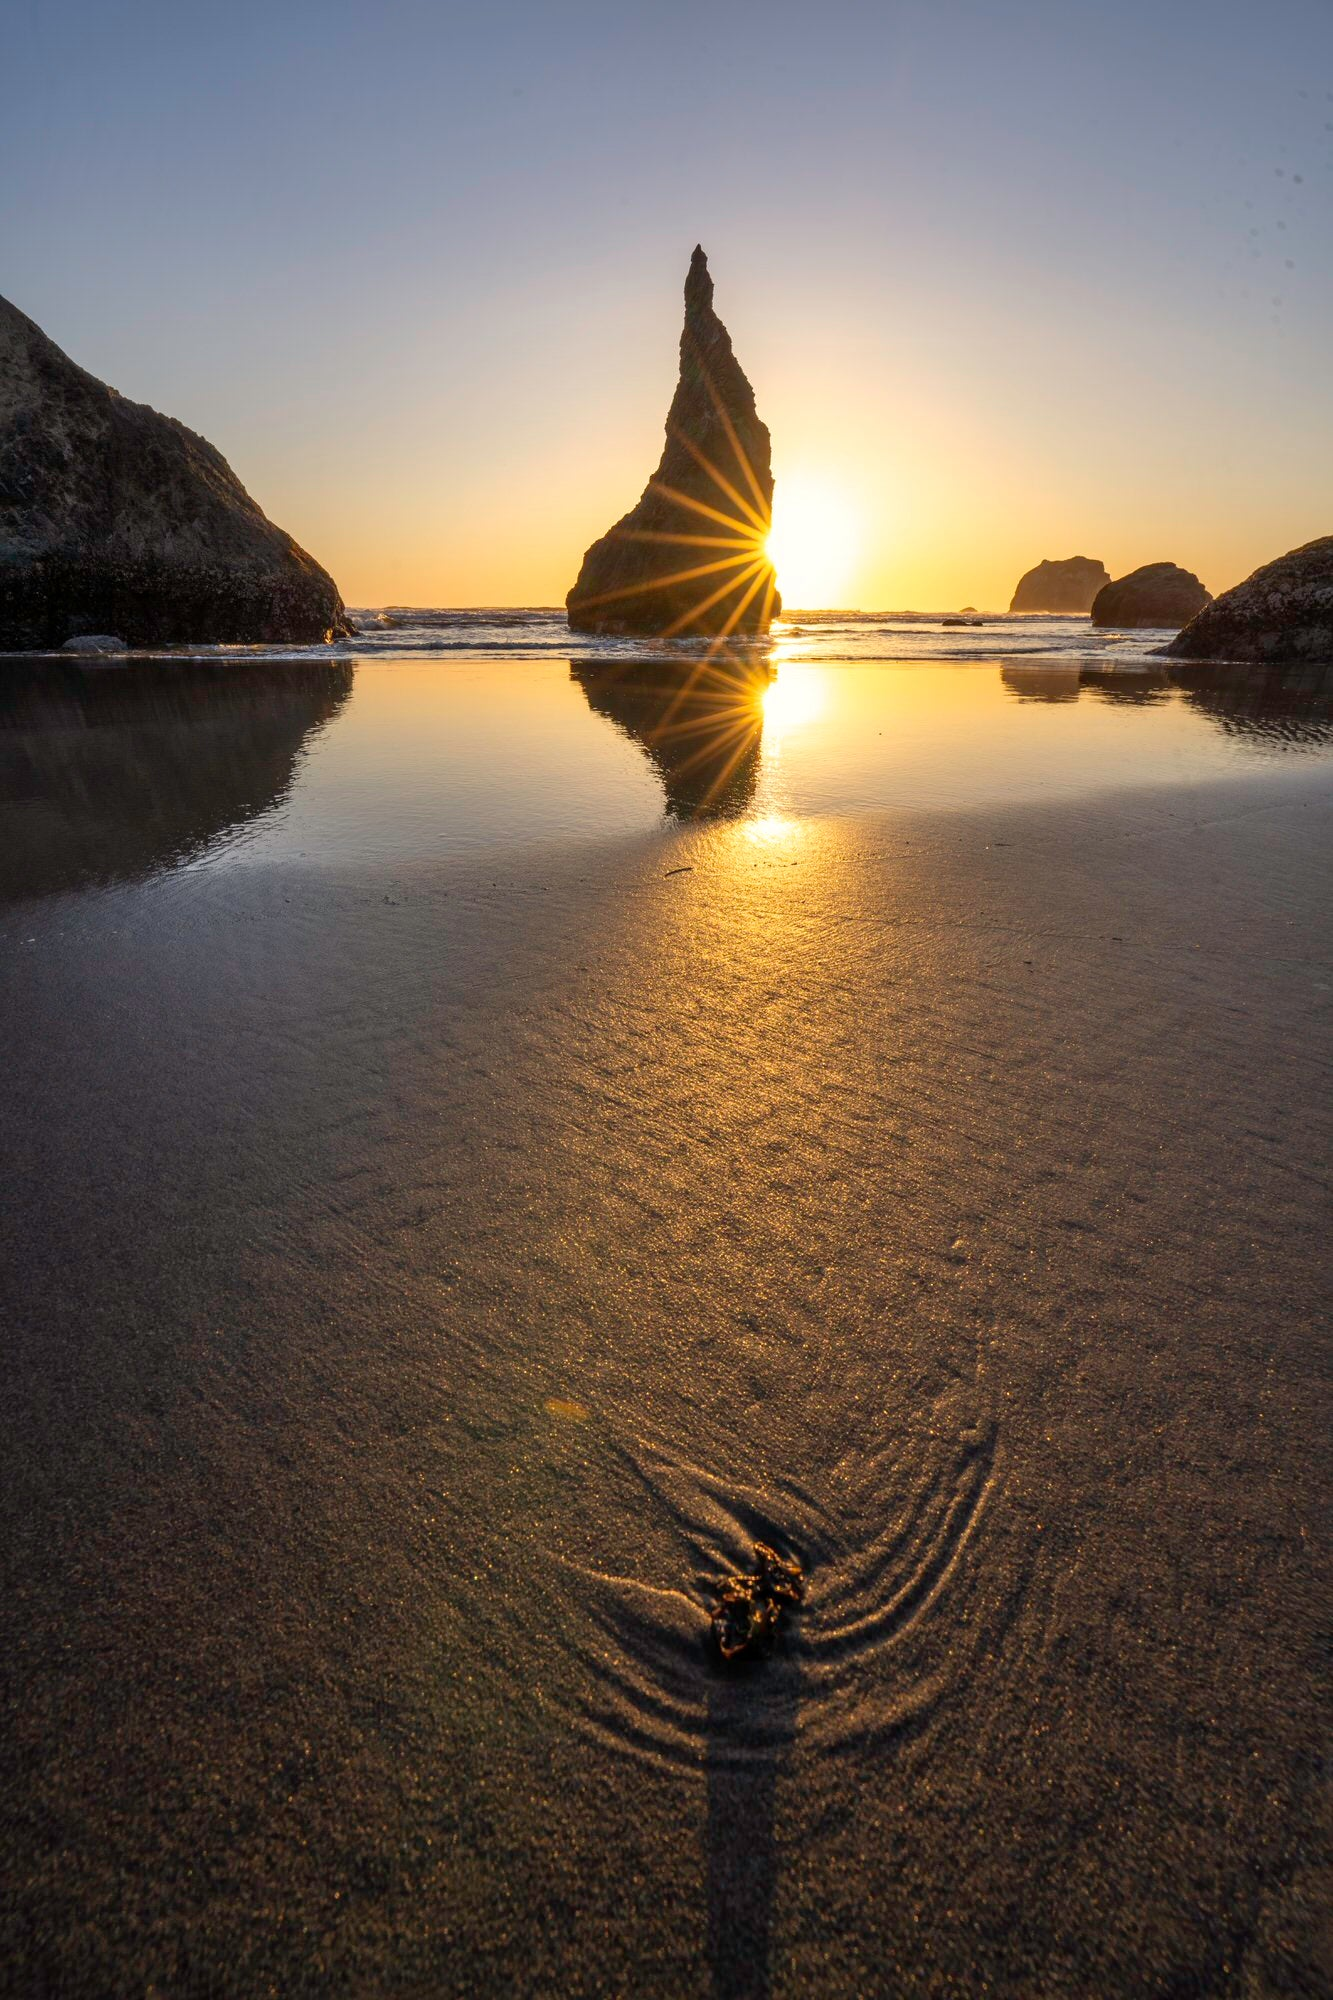 Sony-Alpha-Universe-Photo-by-Don-Smith-14mm-GM-Sun-Star-and-Wizards-Hat-Bandon-Beach.jpeg